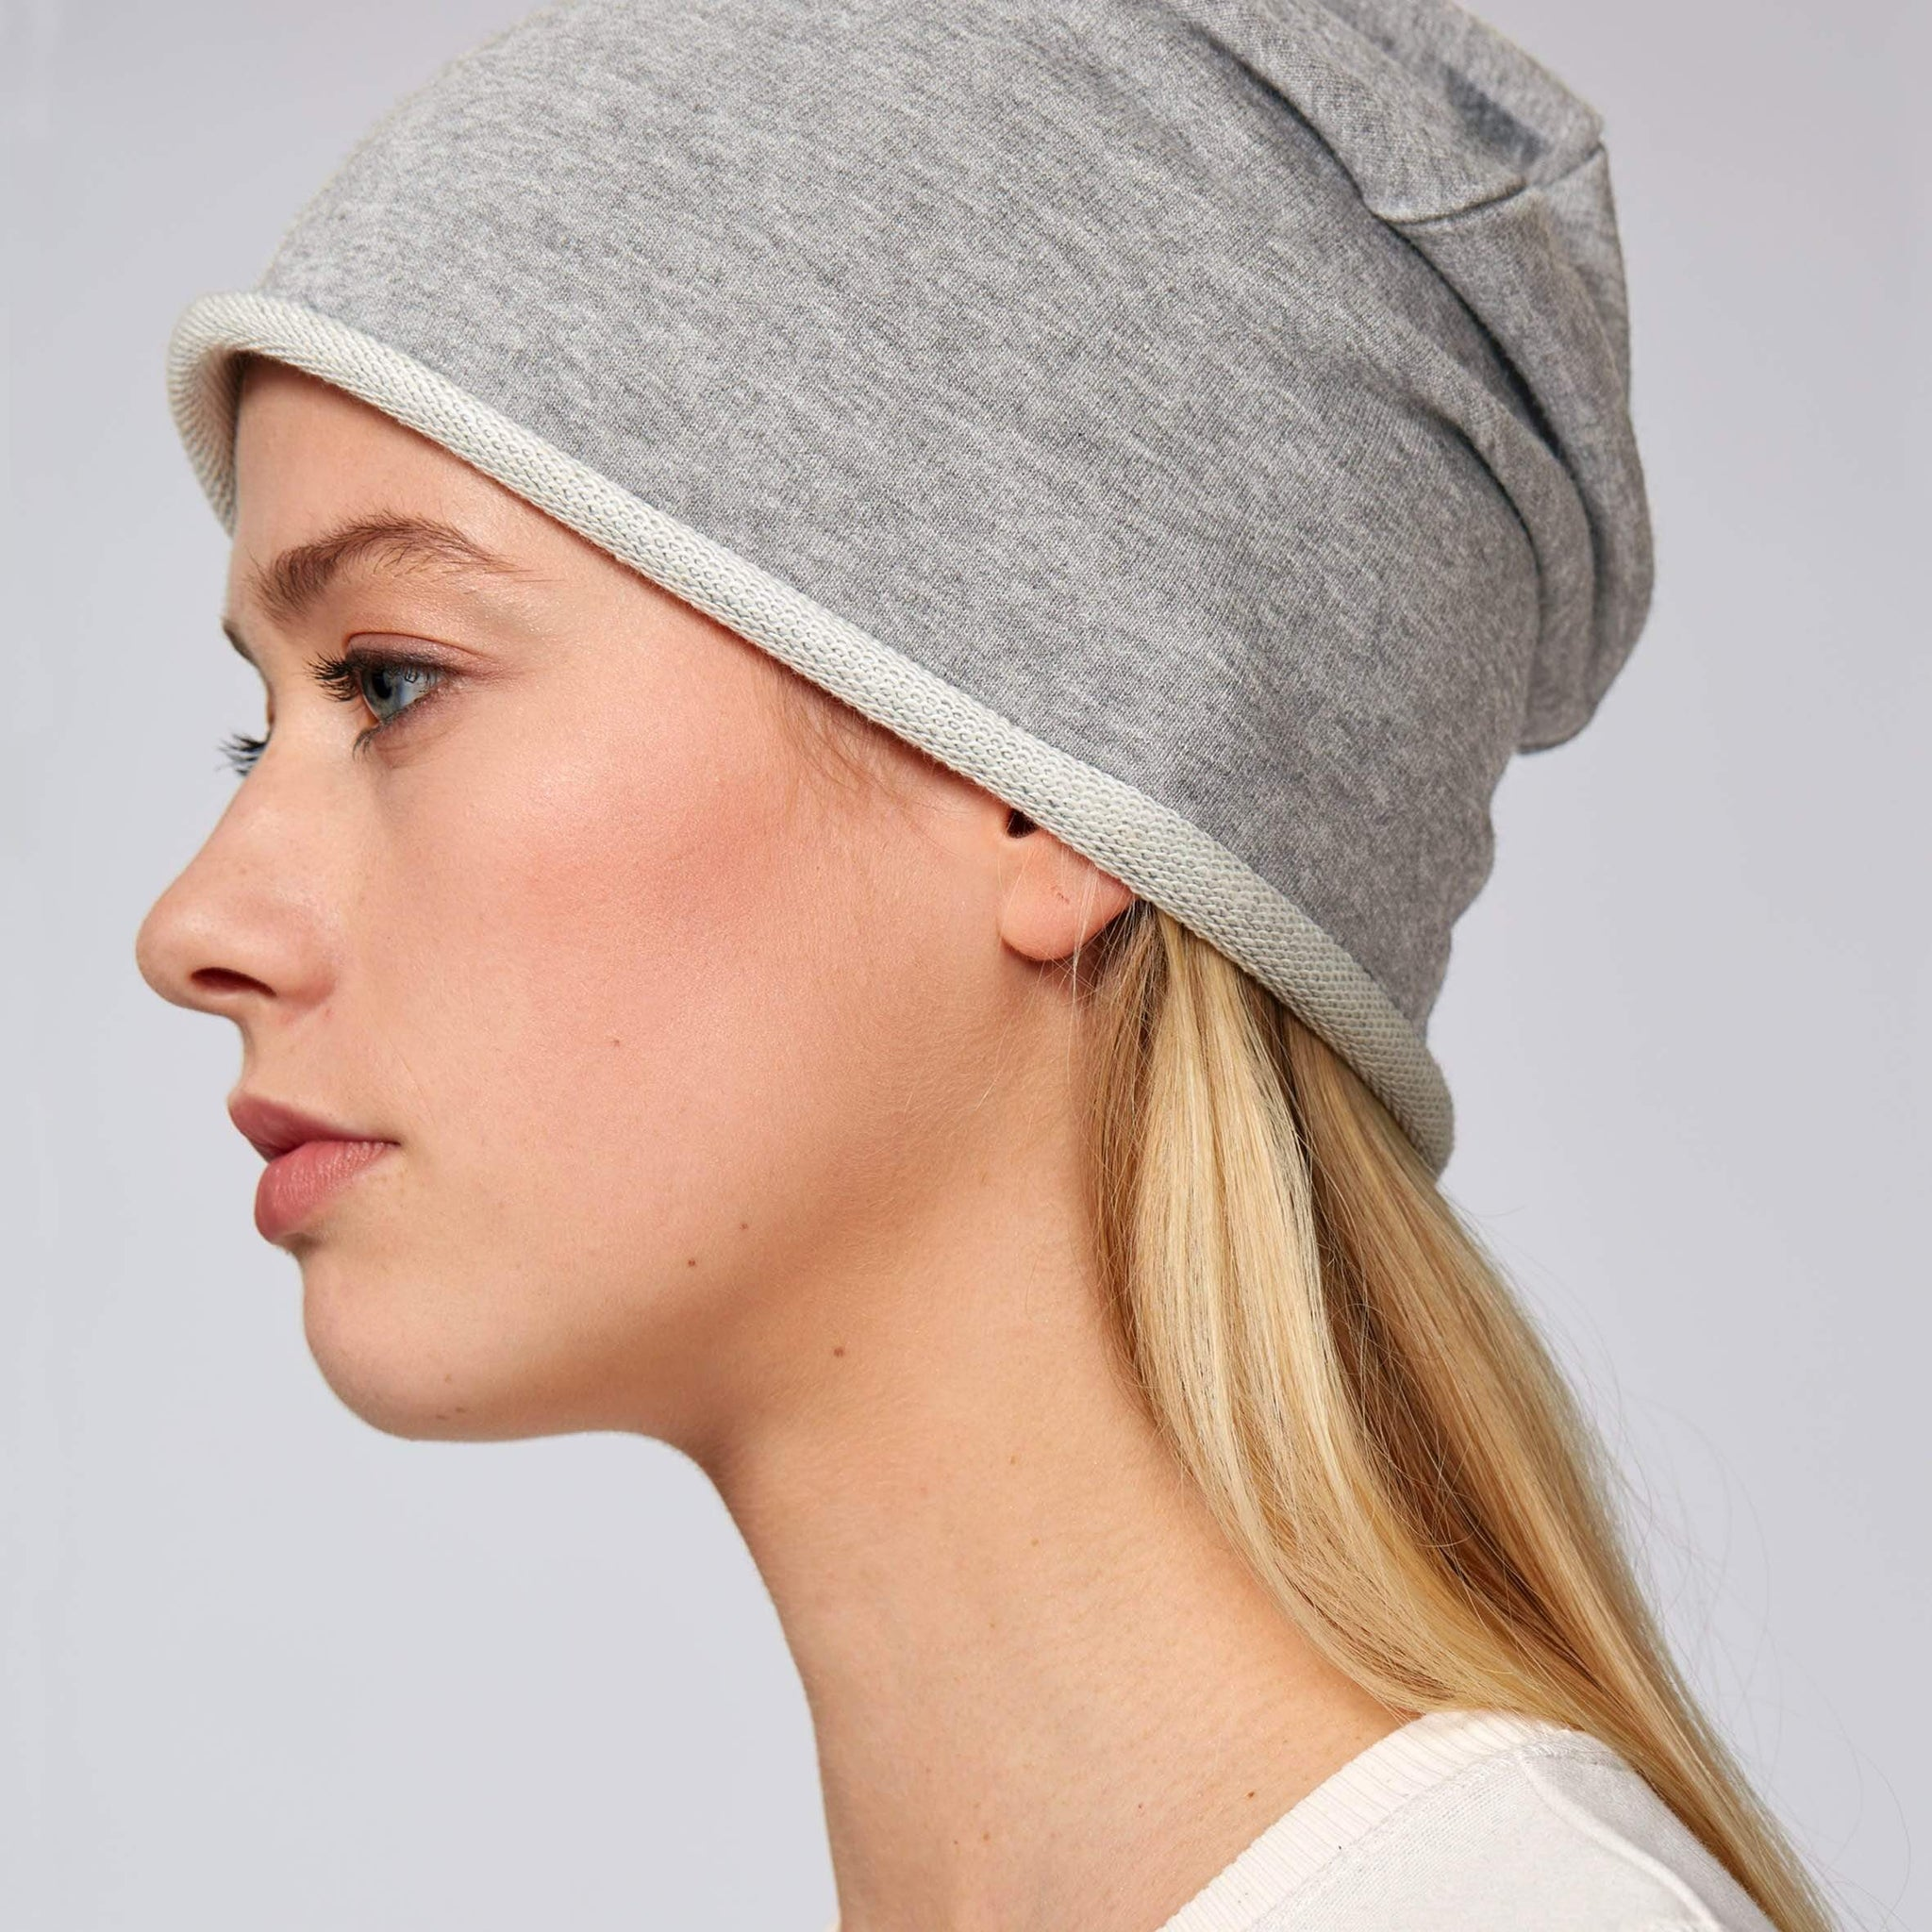 CAL-LUM accessories · accesorios coordinate unisex beanie hat sustainable fashion ethical fashion